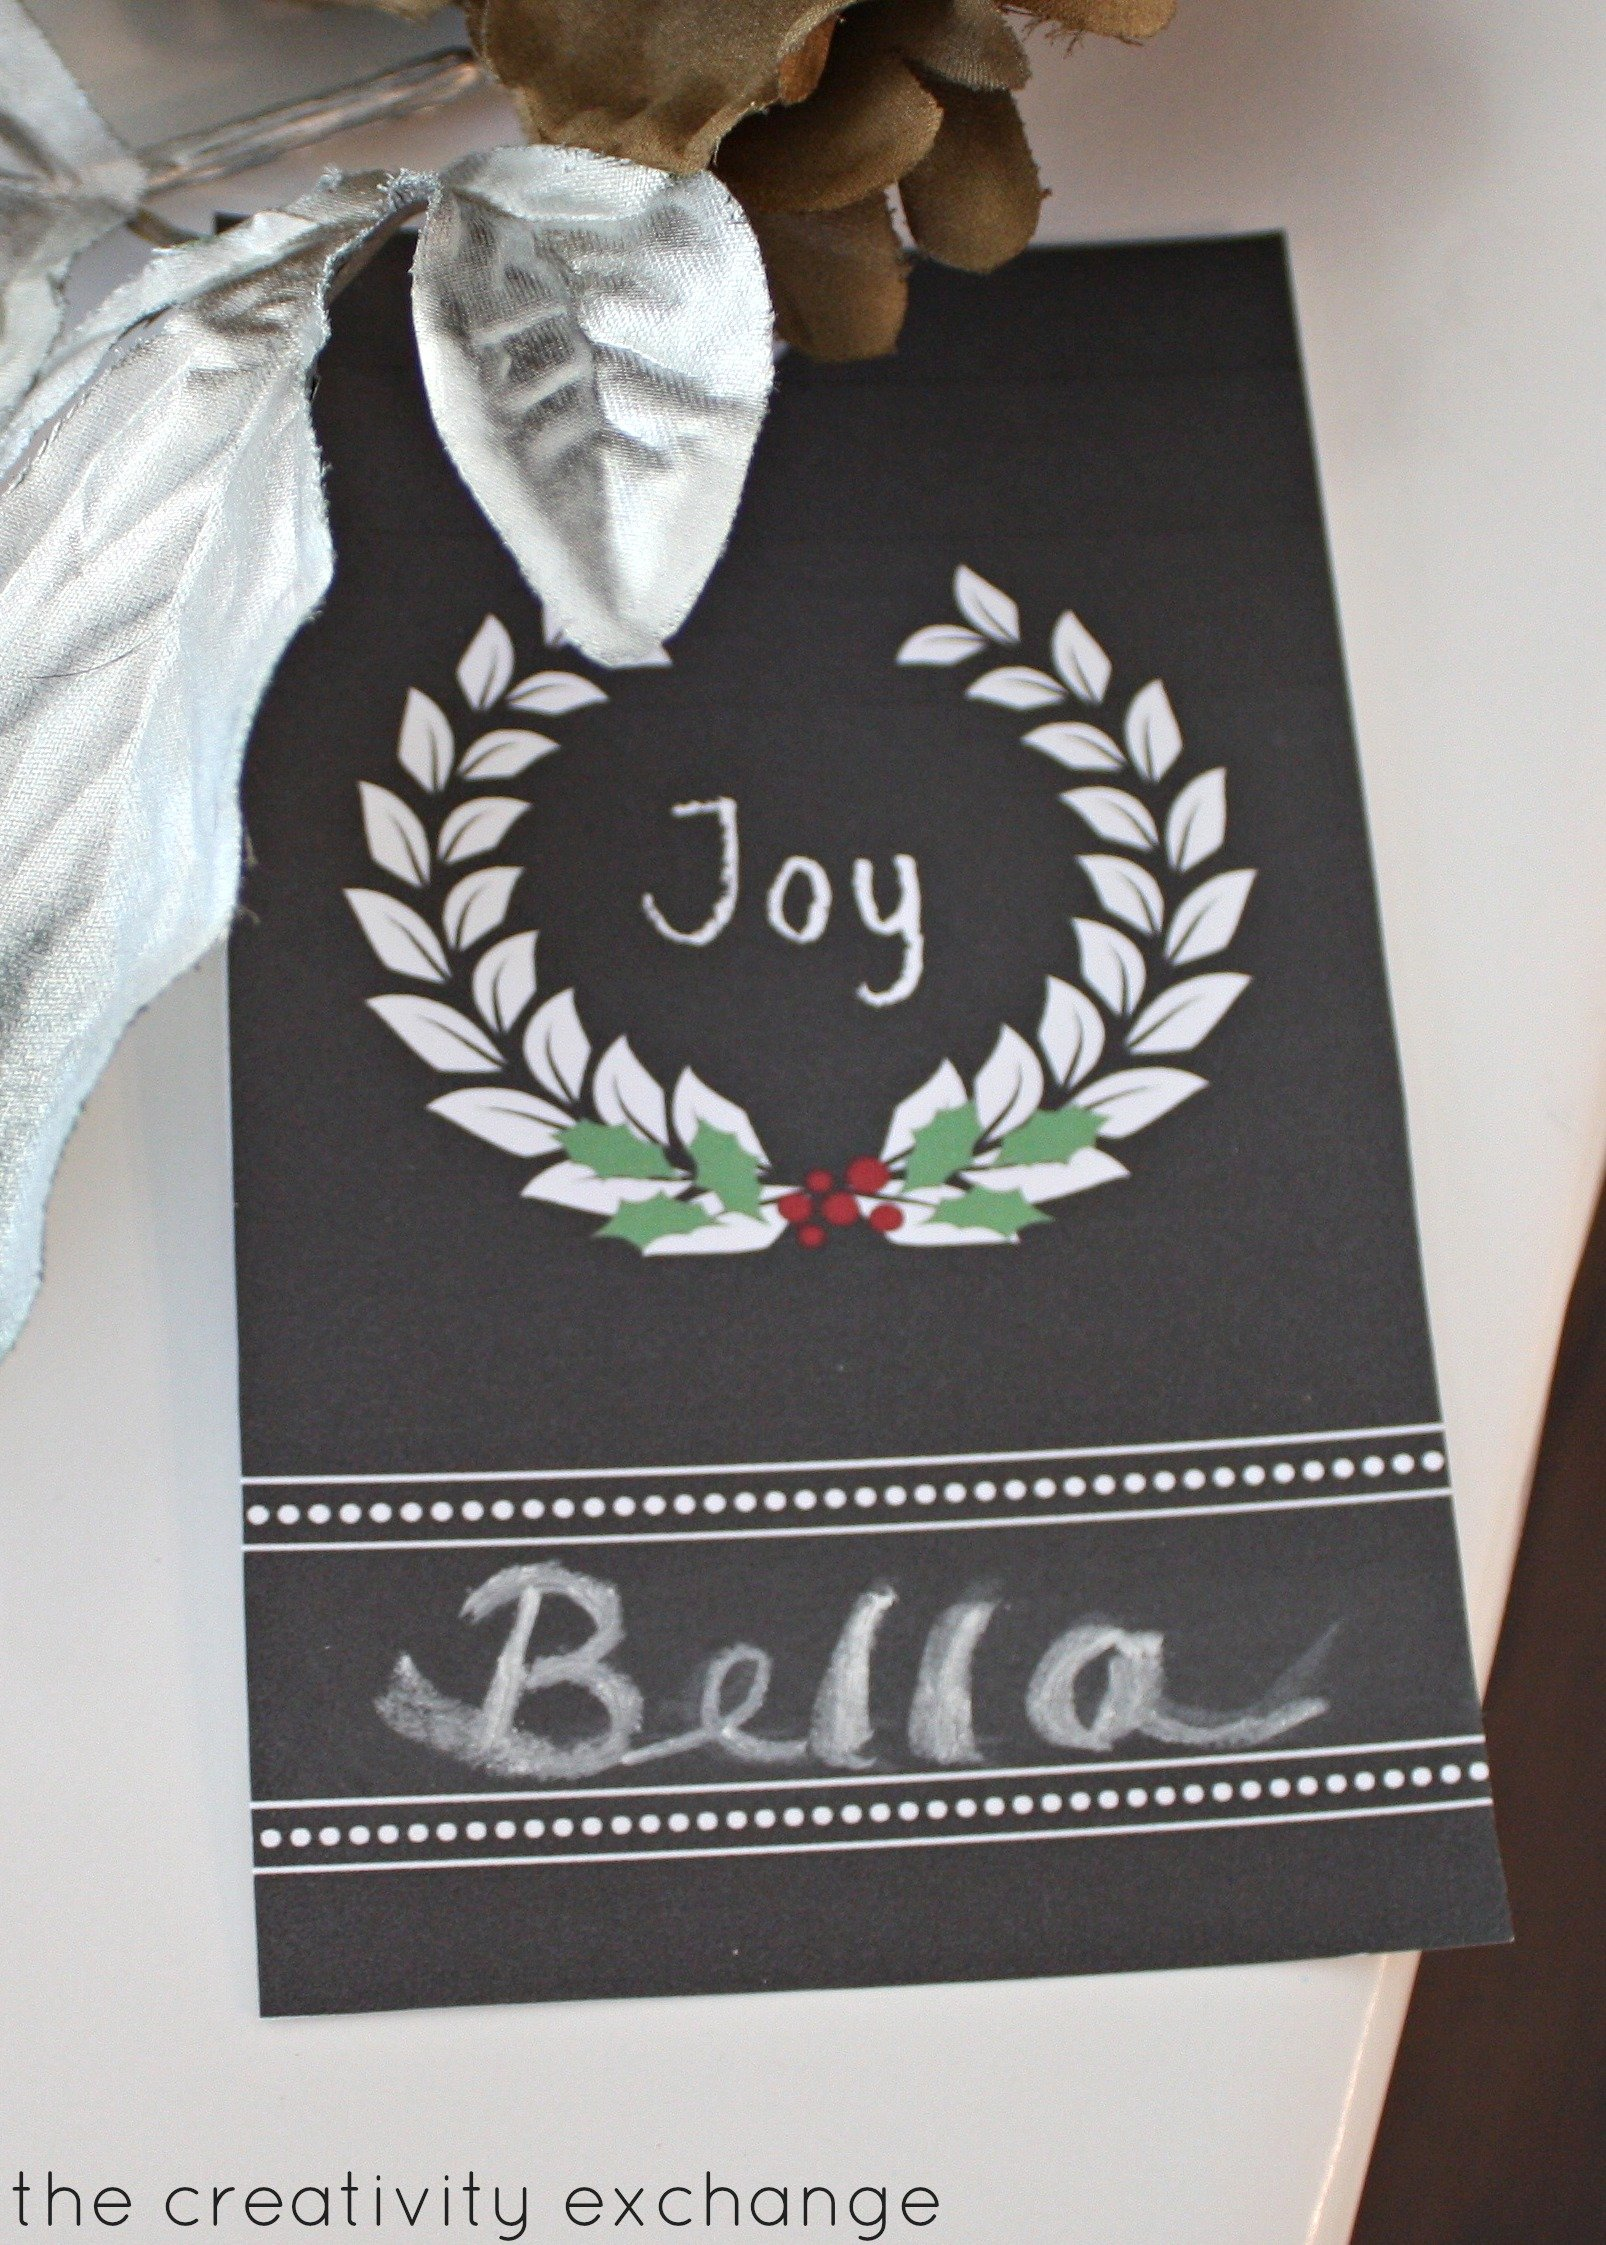 free printable chalkboard holiday tags that you write on with chalk the creativity exchange - Free Holiday Printable